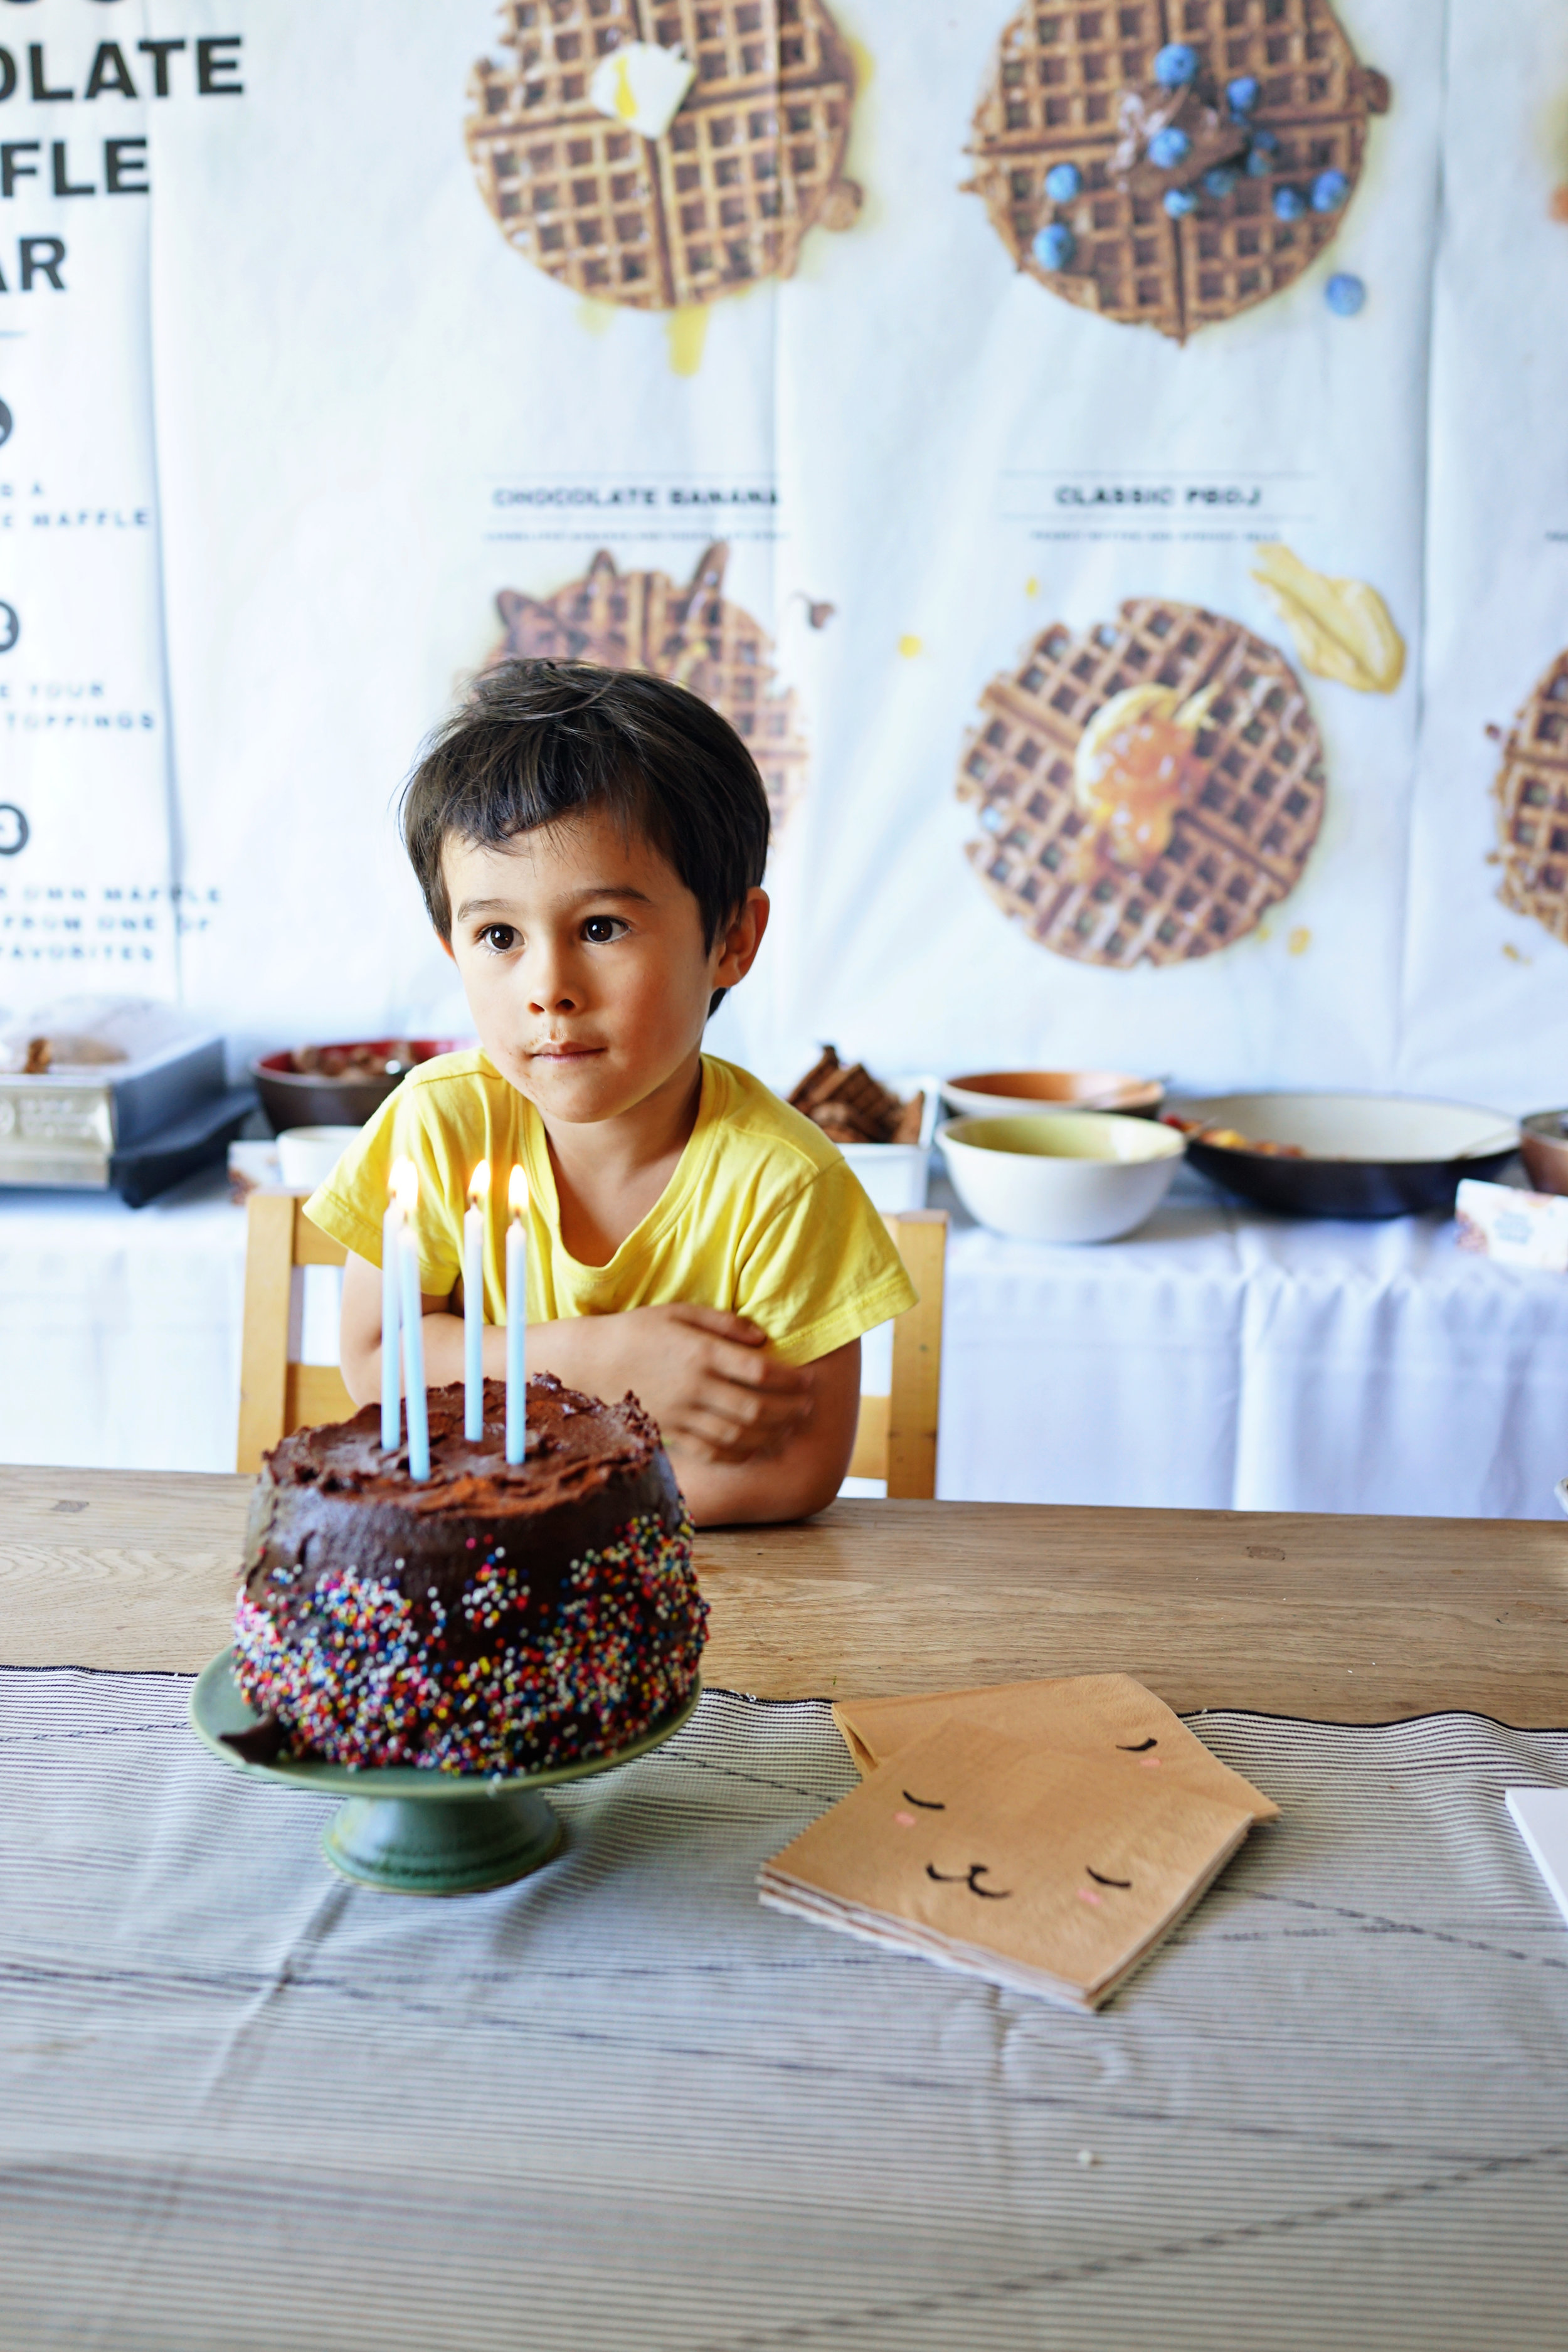 Theo's 4th Birthday Party  /  www.goodonpaperdesign.com/blog/2016/8/22/theos-4th-birthday-party  /  @good_on_paper